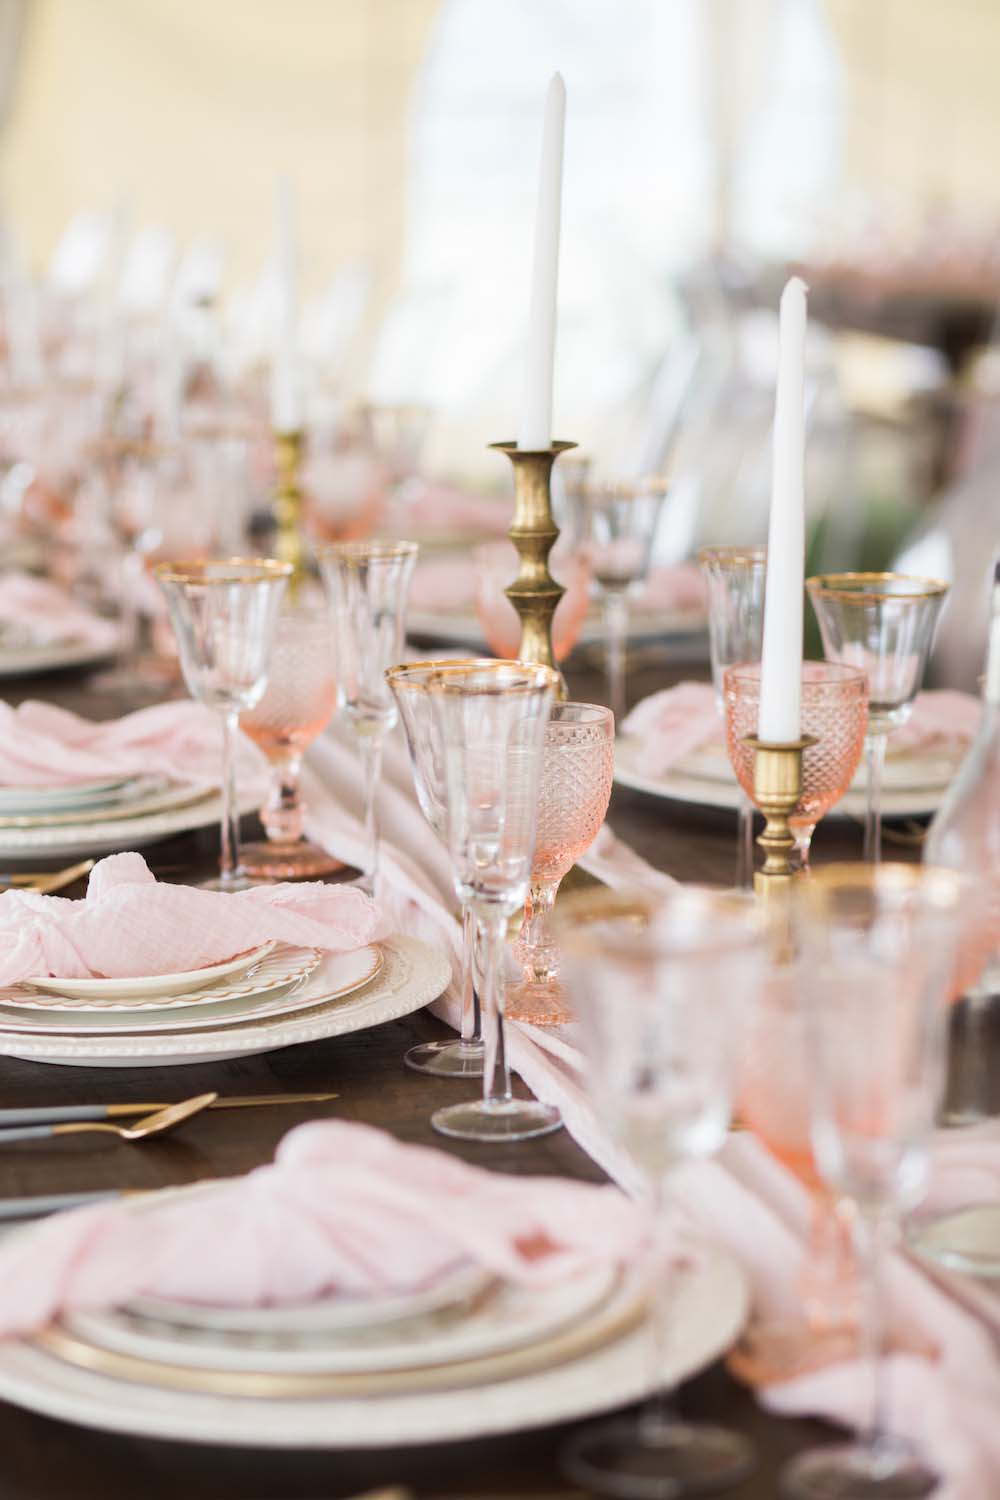 A Rustic Celebration at the Willibald Farm Distillery in Ayr, Ontario - Tablescape